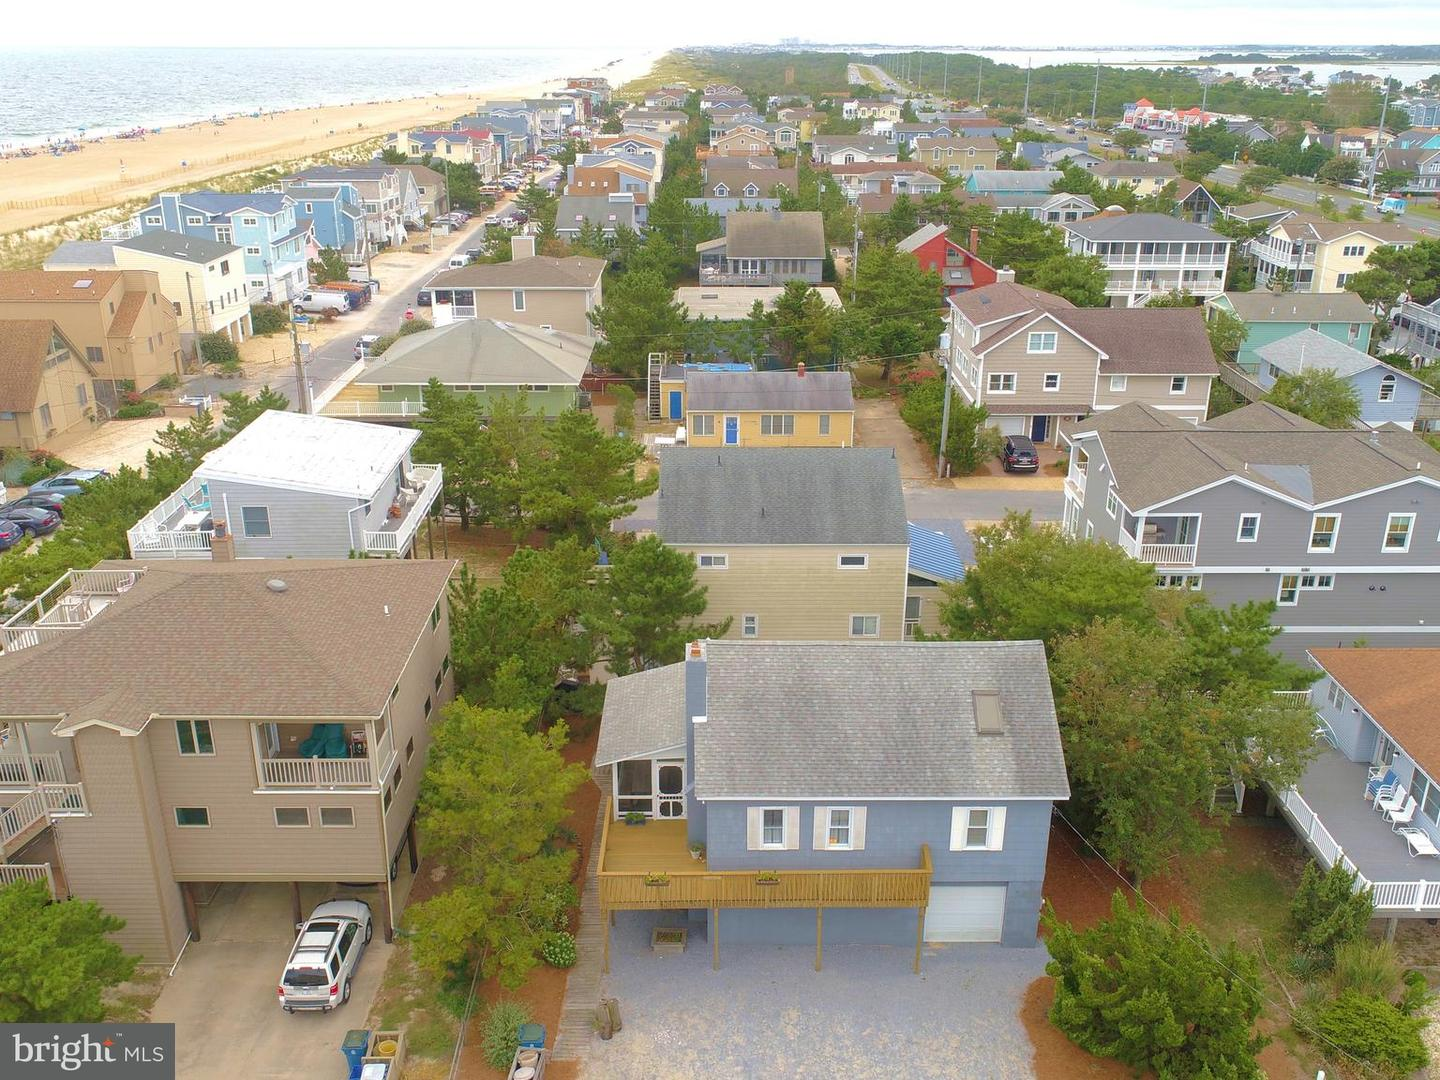 1002299338-300501703081-2018-08-30-10-08-41 4 S 4th St | South Bethany, De Real Estate For Sale | MLS# 1002299338  - Suzanne Macnab